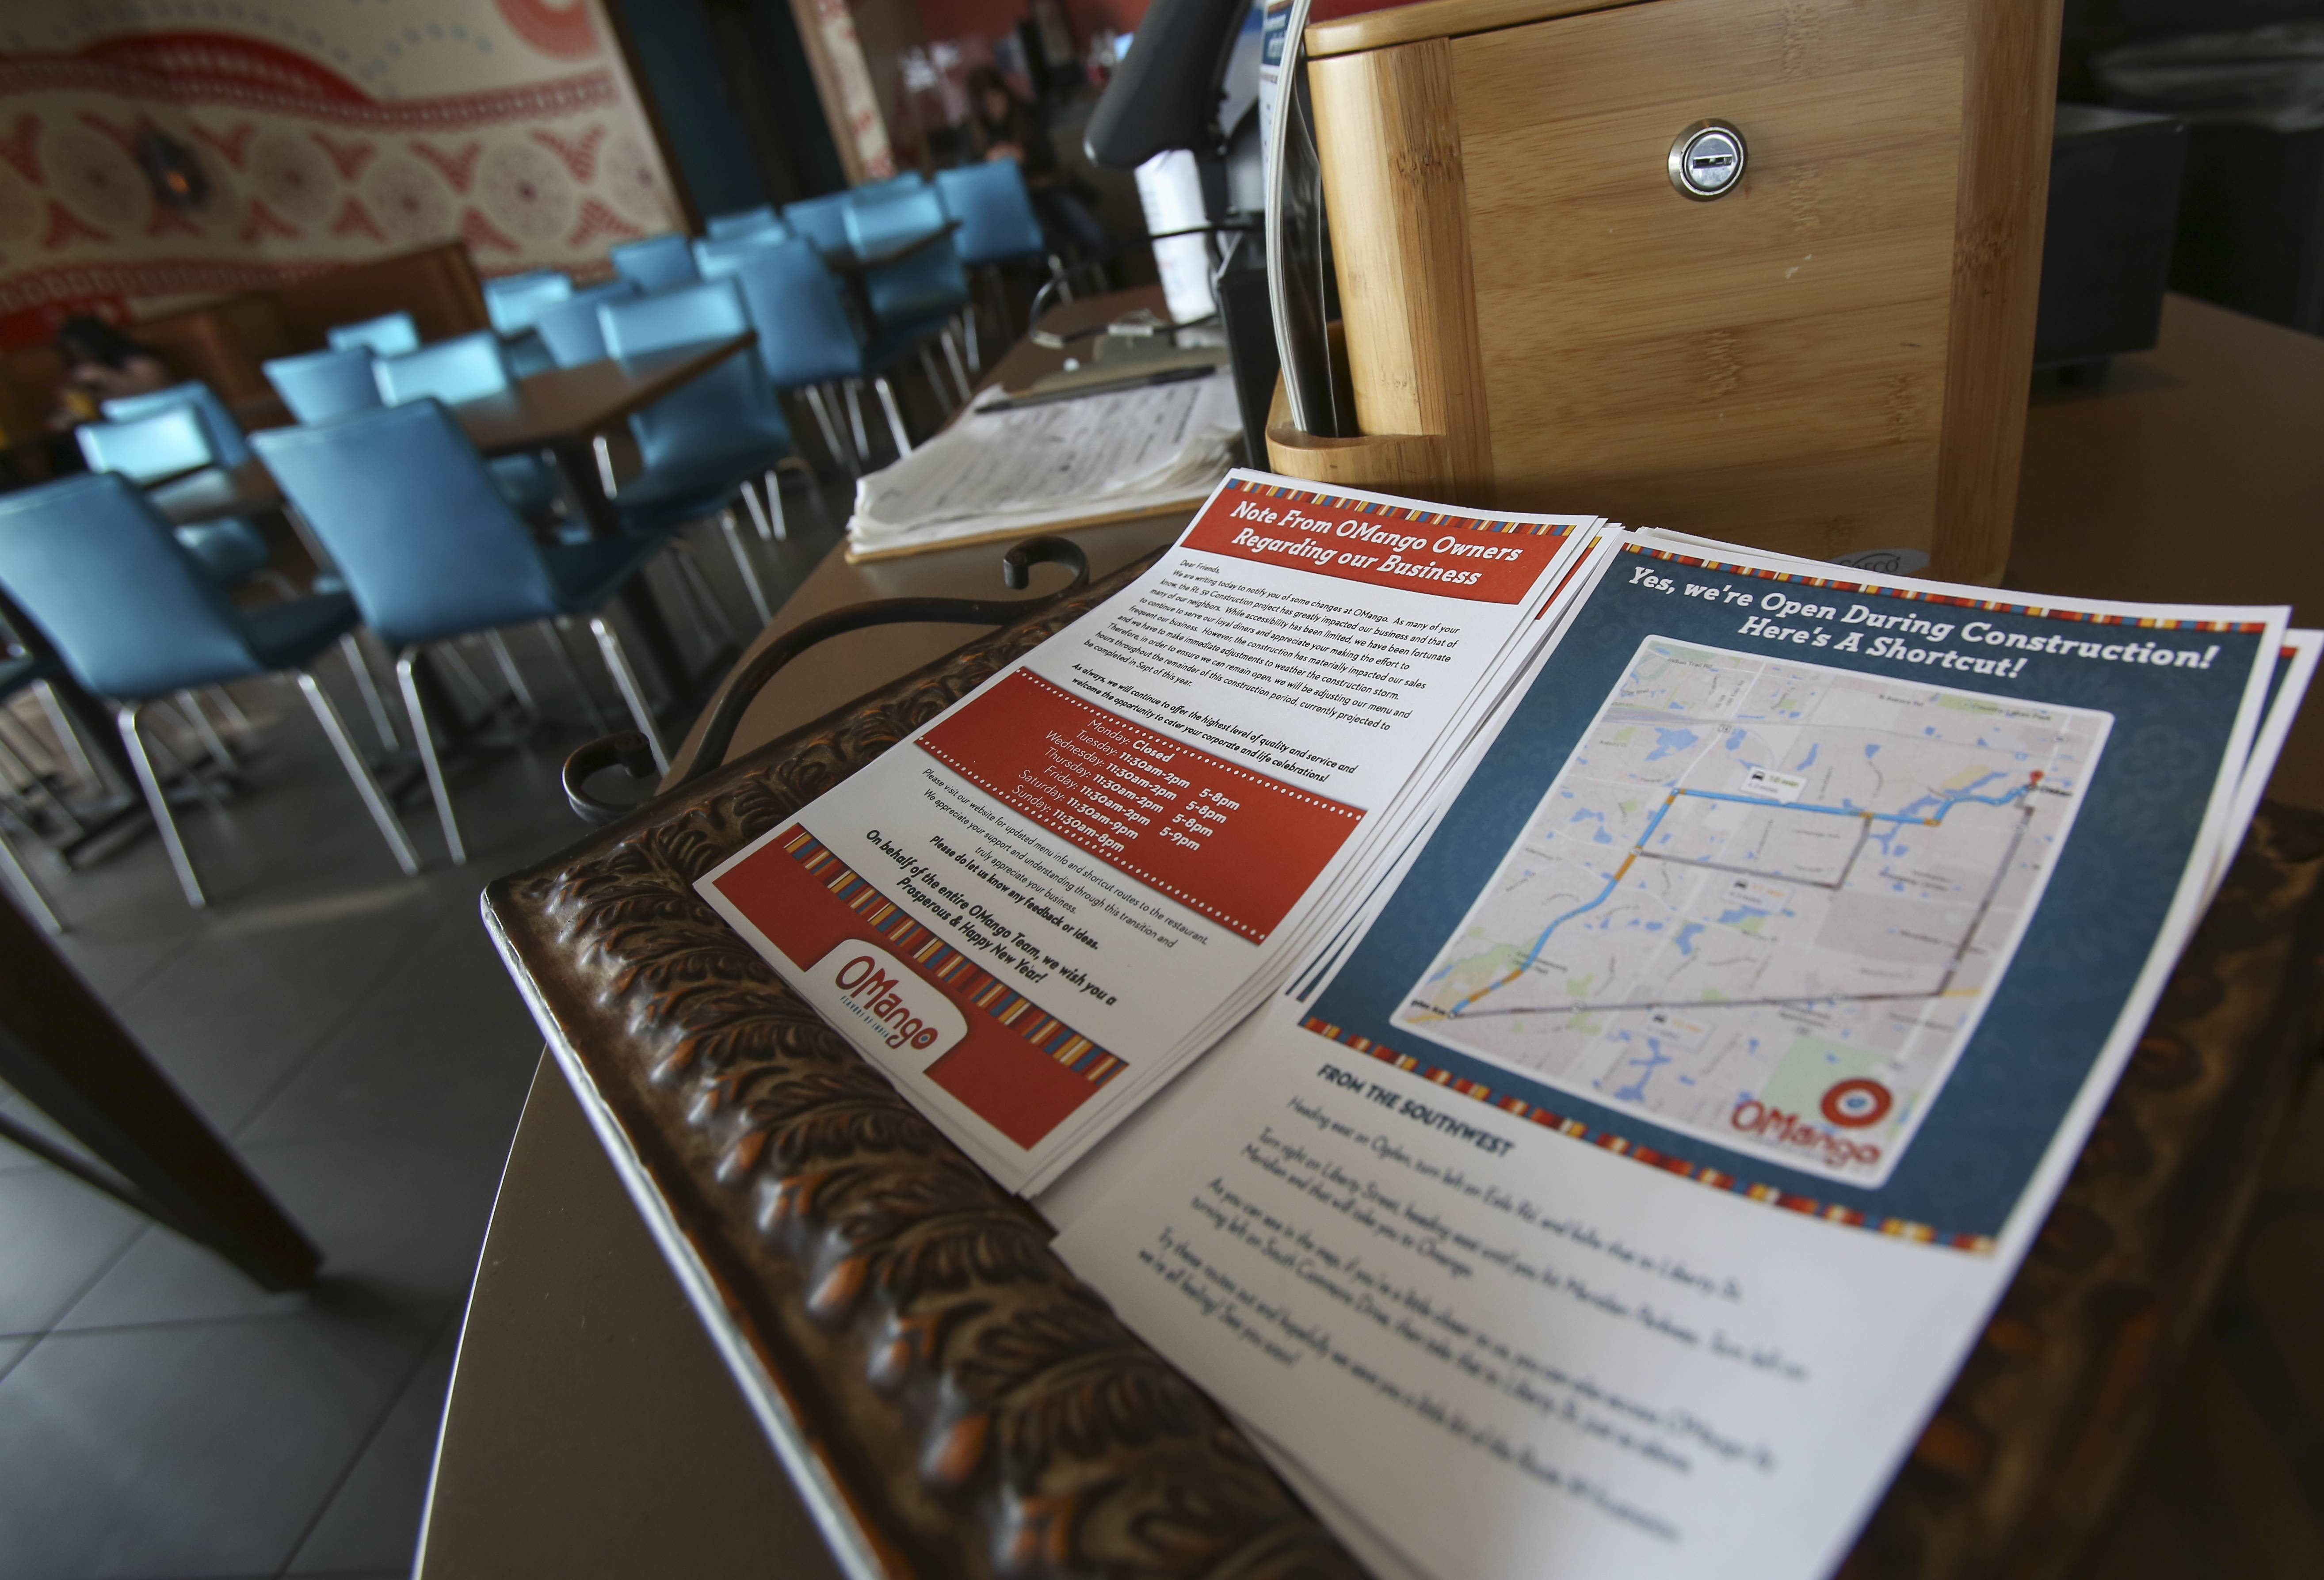 OMango Indian restaurant in Aurora is distributing a map showing shortcuts to the restaurant to avoid the ongoing road work to widen a three-mile stretch of Route 59 on the Naperville/Aurora border.